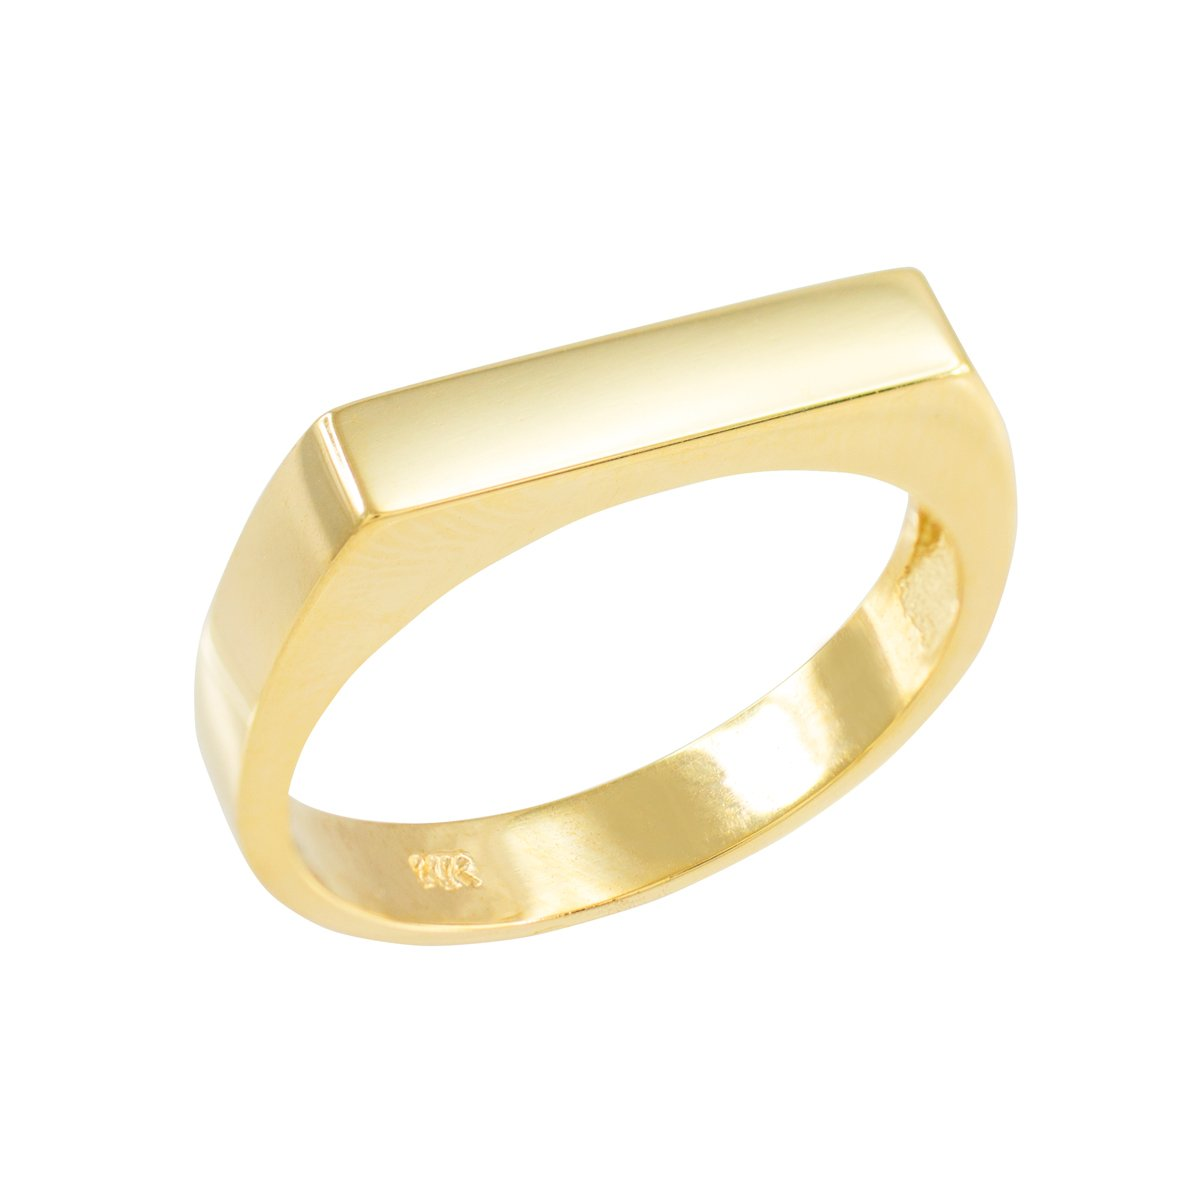 Stackable 10k Yellow Gold Custom Engravable Flat Top Signet Ring (Size 5)